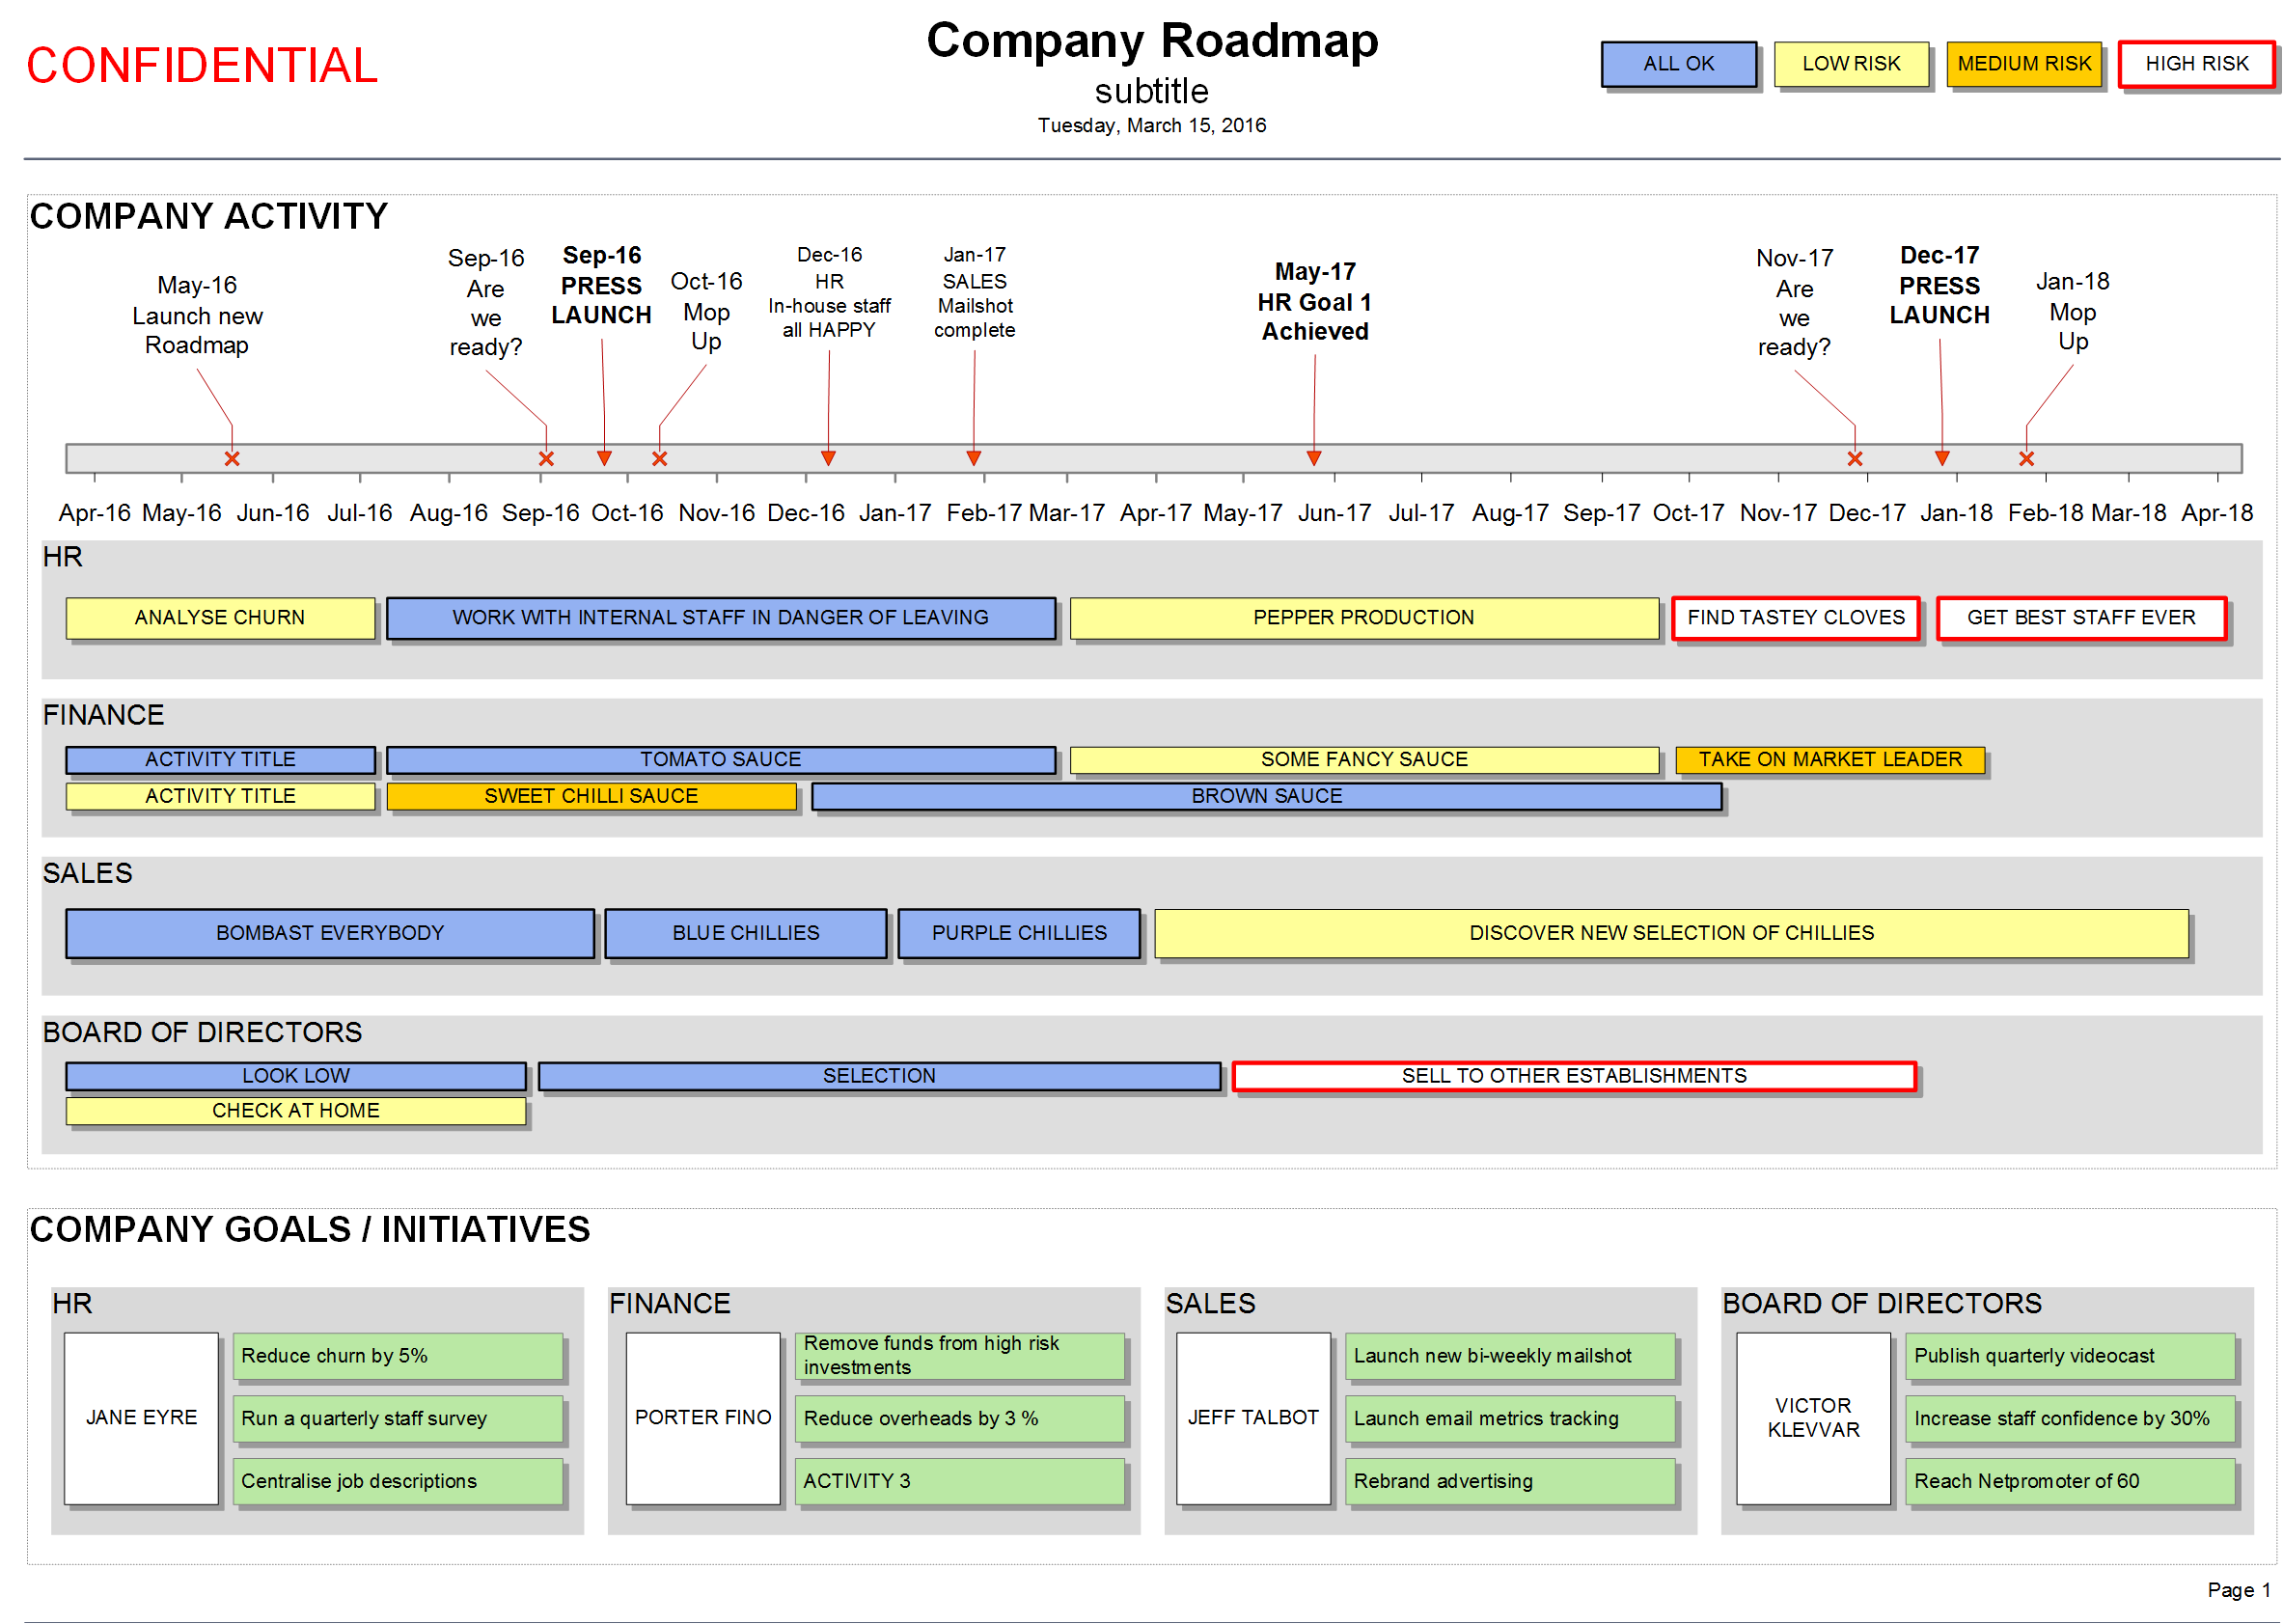 Visio Roadmap Template | Company Roadmap Template Visio Work Ideas Pinterest